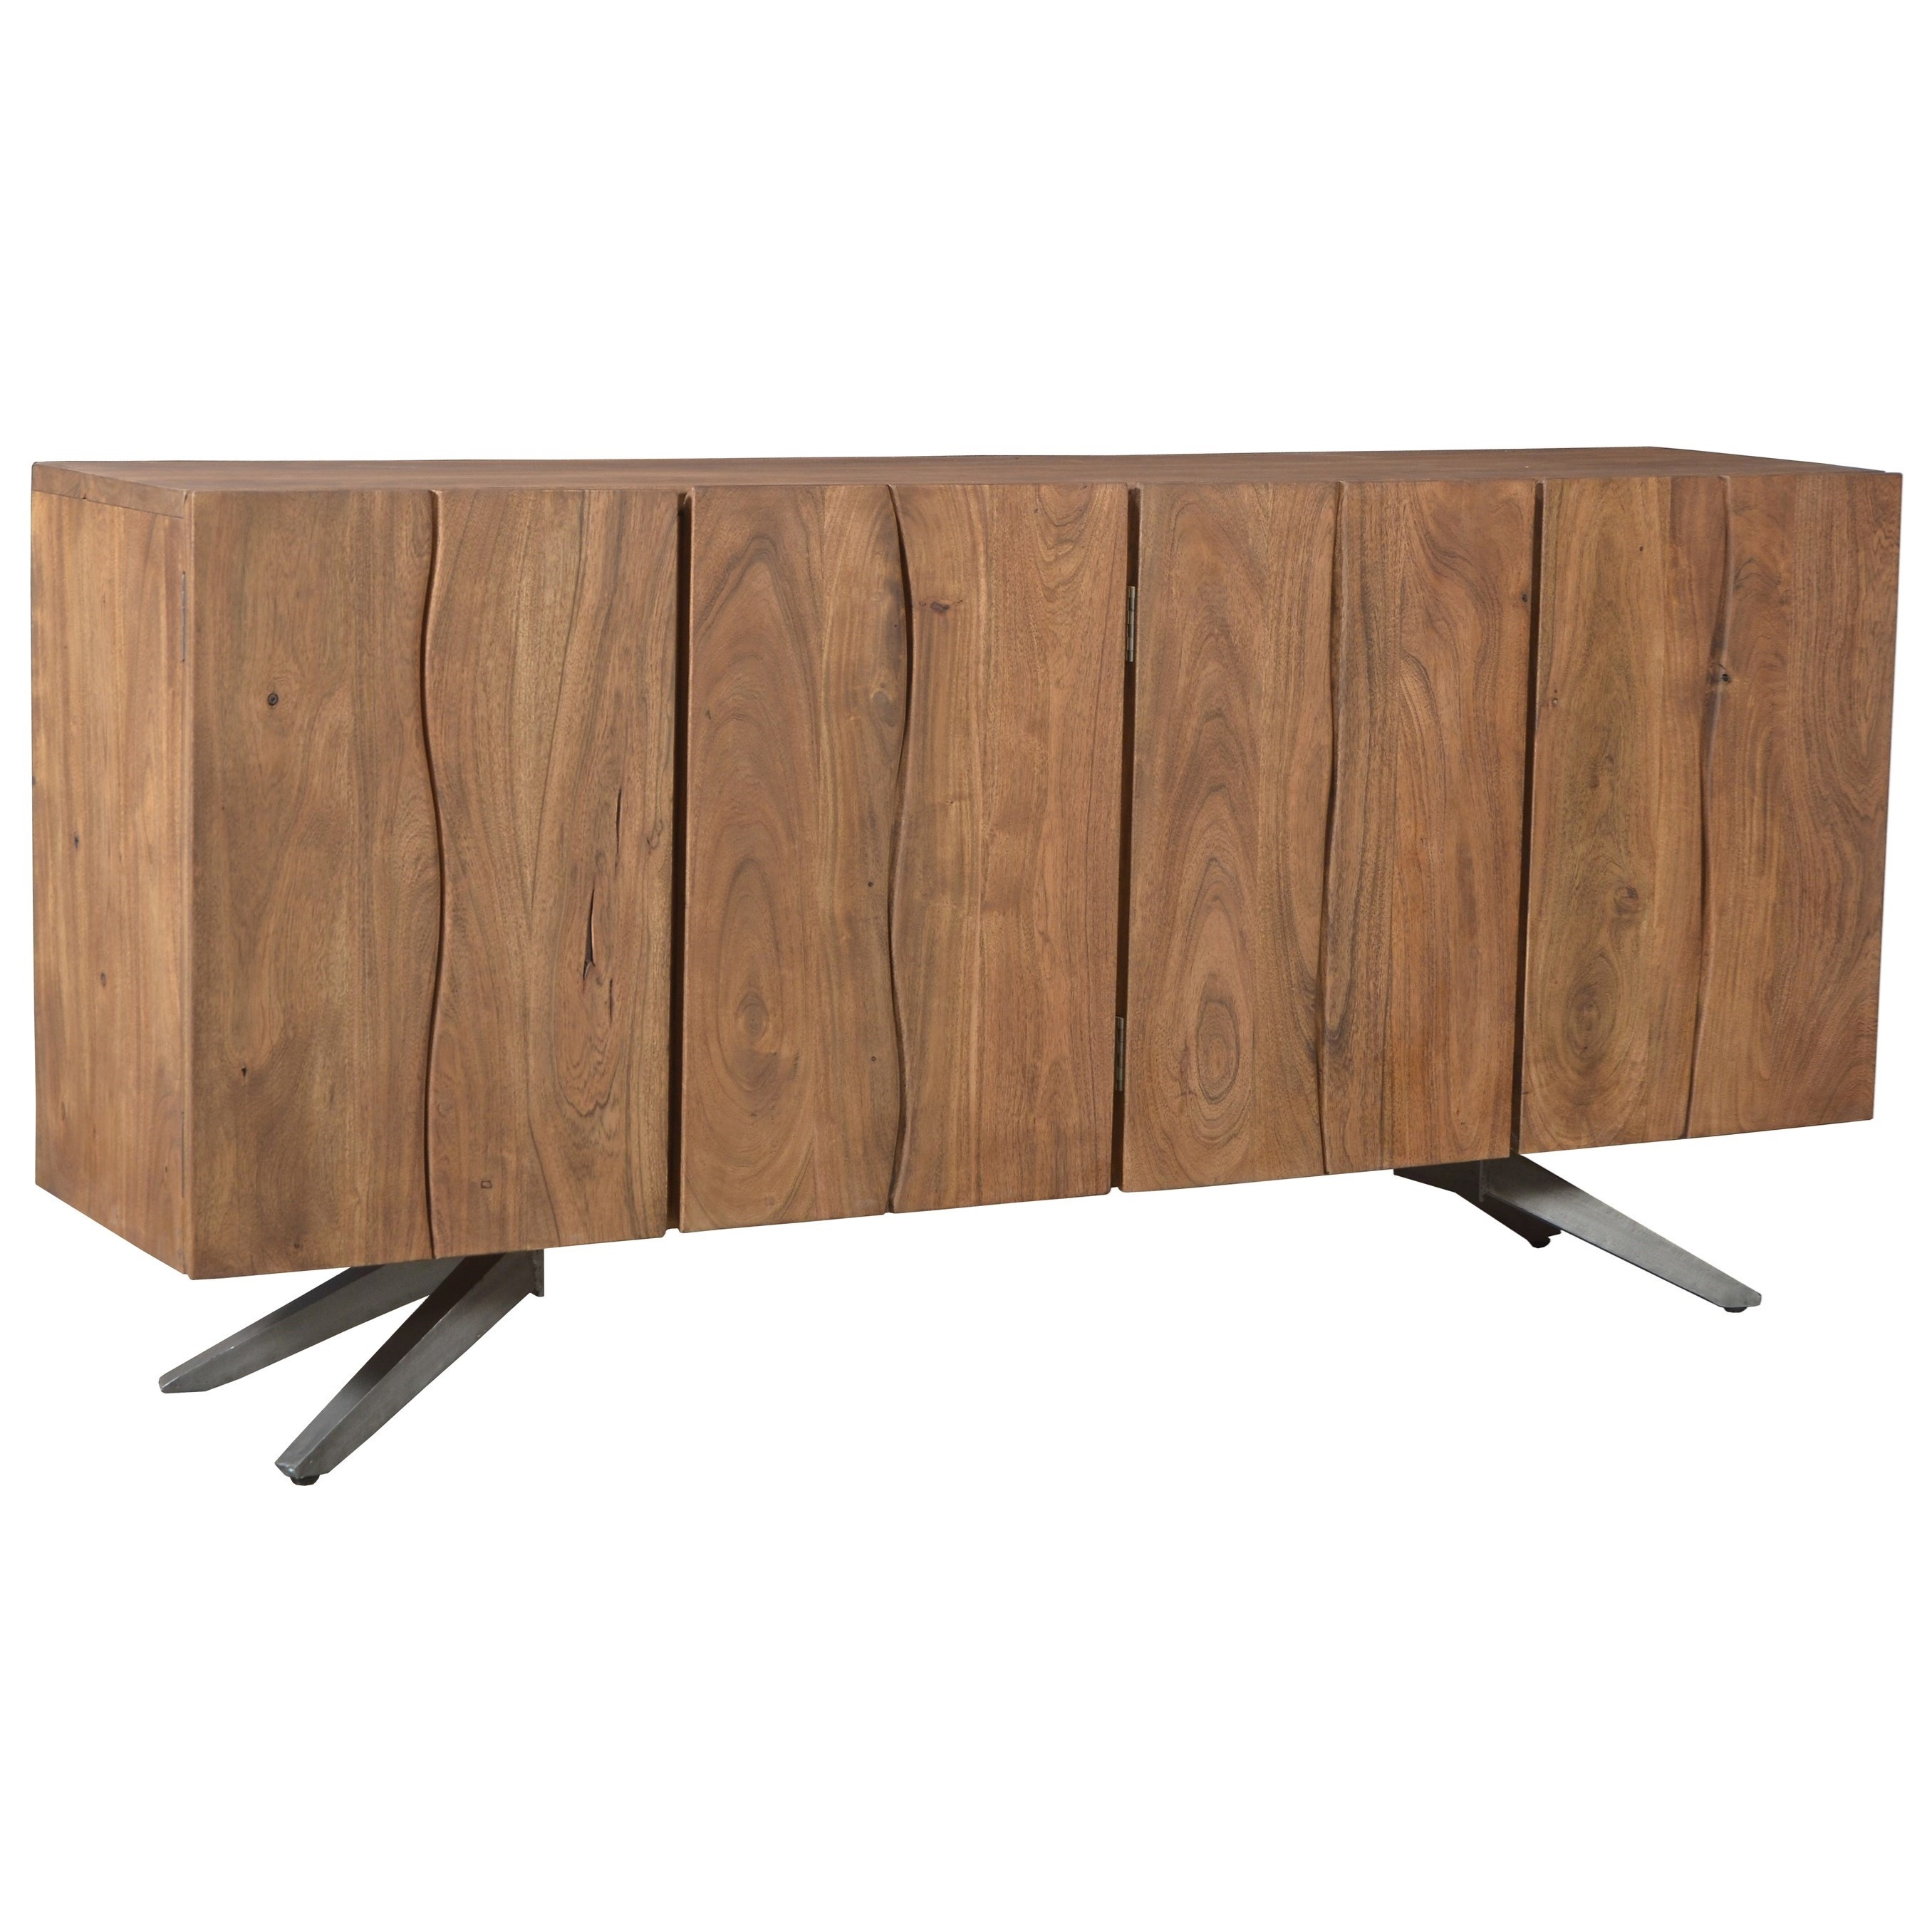 moe's home collection air loft sideboard  stoney creek furniture  - moe's home collection air loft sideboard  item number lx